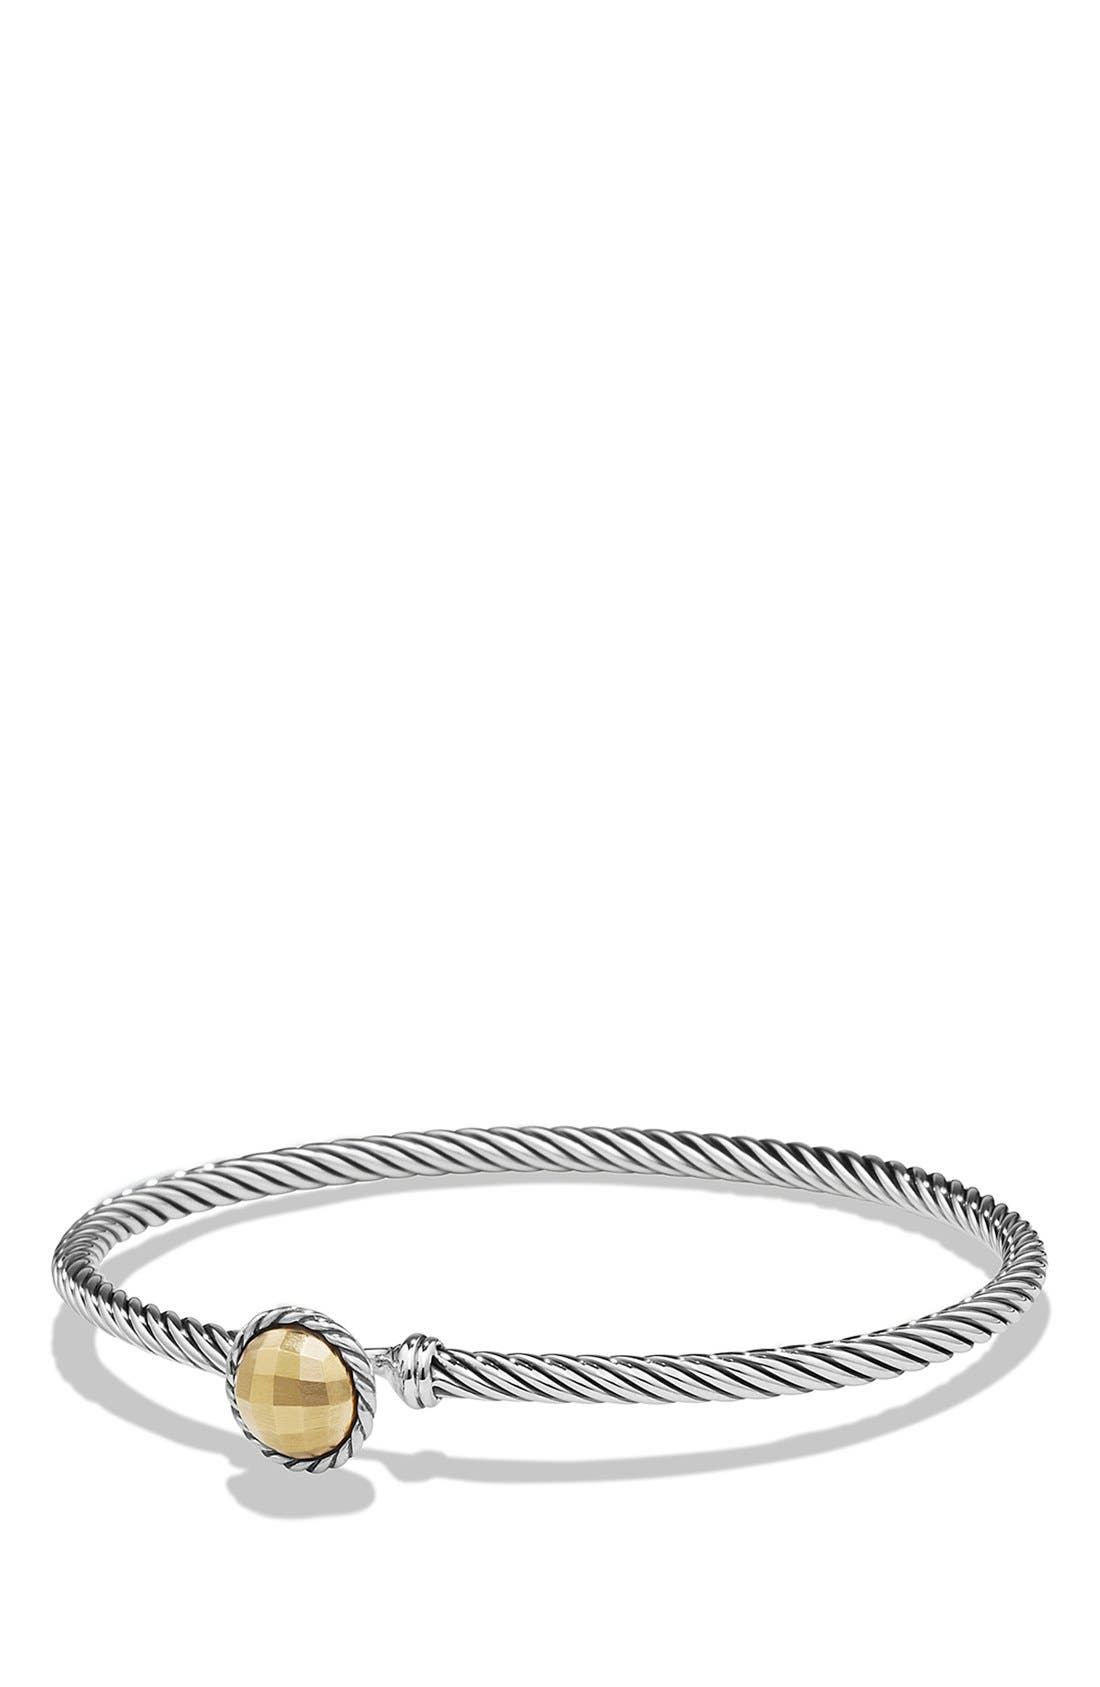 'Châtelaine' Bracelet with Gold Dome and 18K Gold,                         Main,                         color, Gold Dome